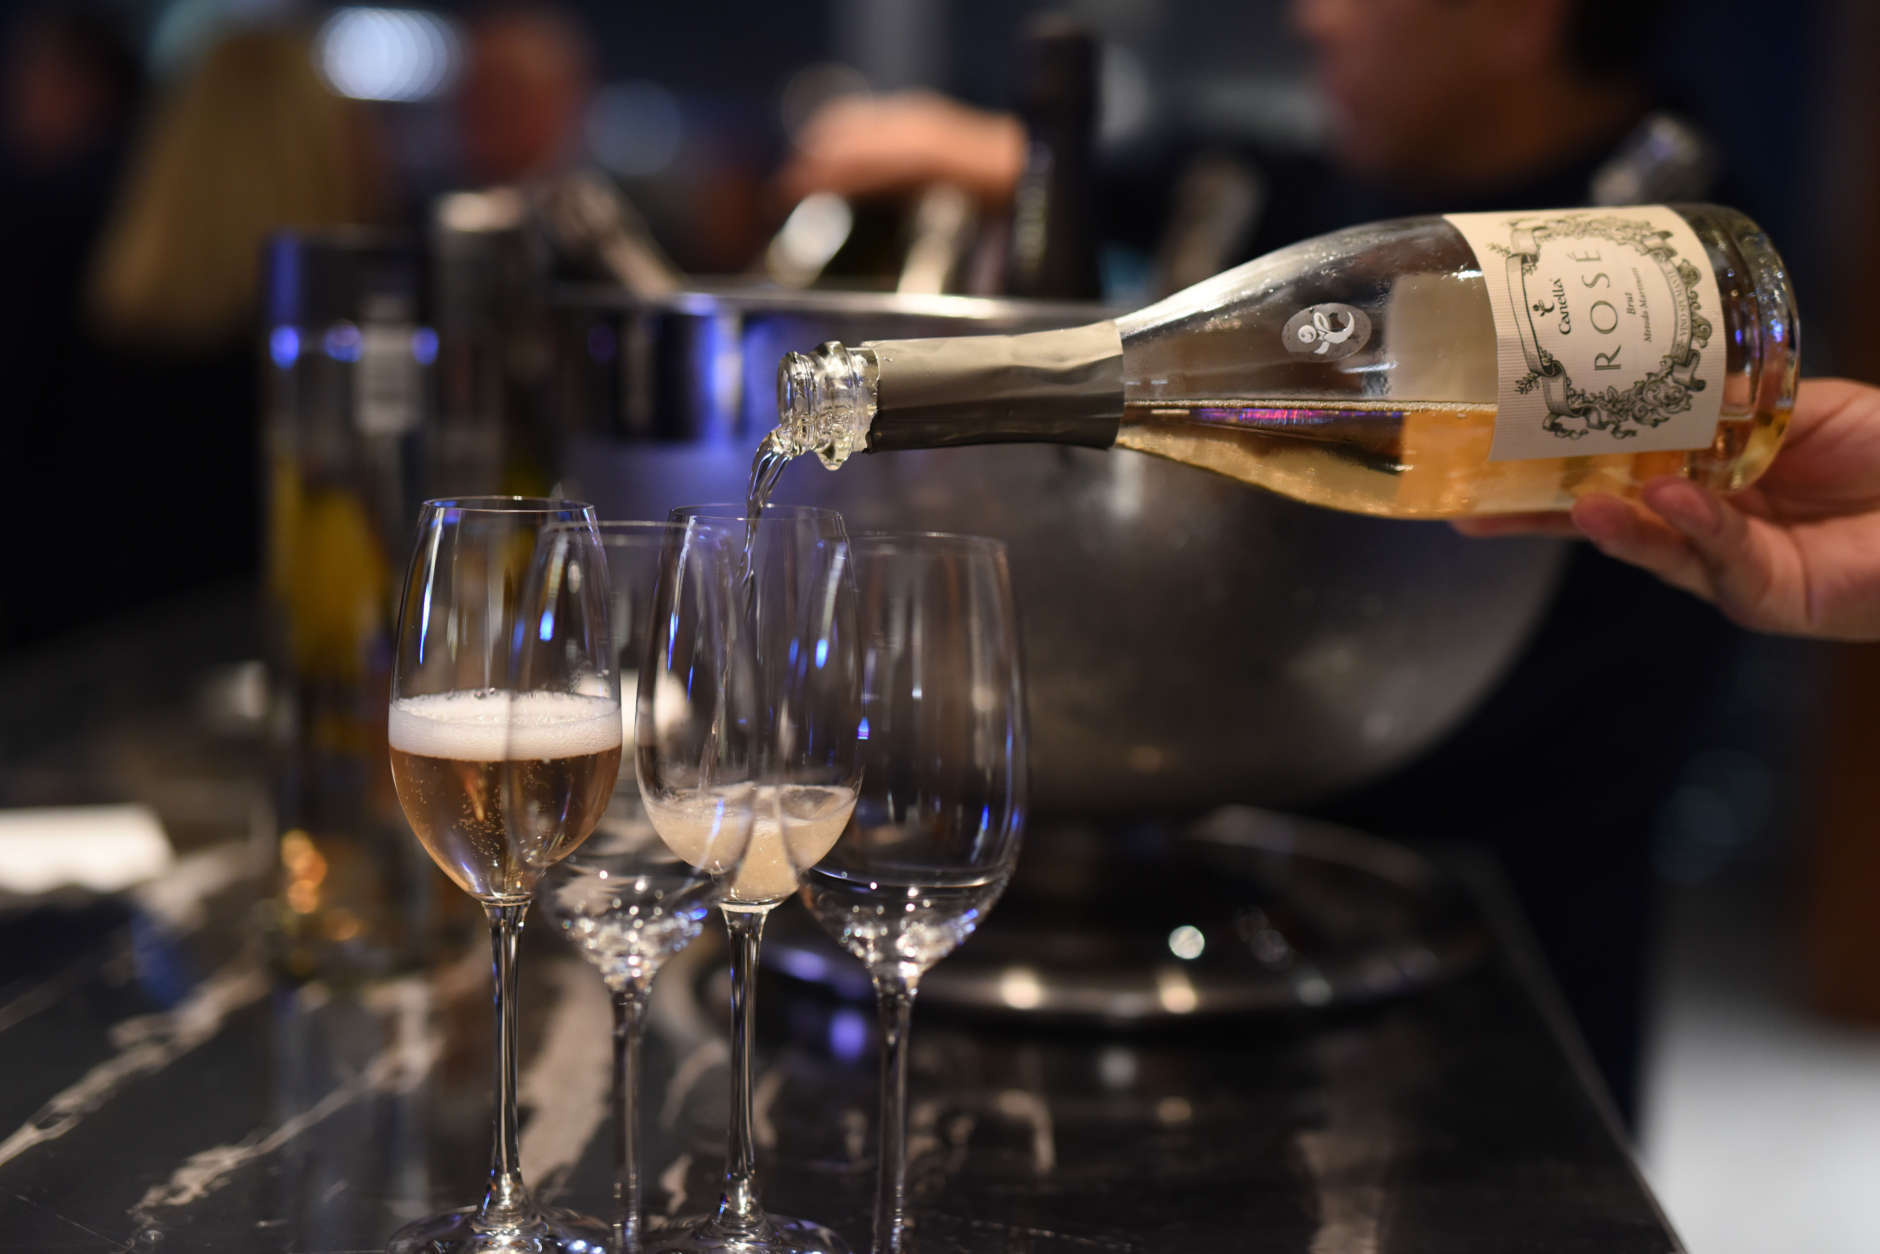 NEW YORK, NY - OCTOBER 13: Canella Spumante Rosé Brut being poured at a Dinner hosted by Chrissy Teigen and Mario Batali part of the Bank of America Dinner series curated by Chefs Club at Bank of America Building on October 13, 2016 in New York City.  (Photo by Dave Kotinsky/Getty Images for NYCWFF)